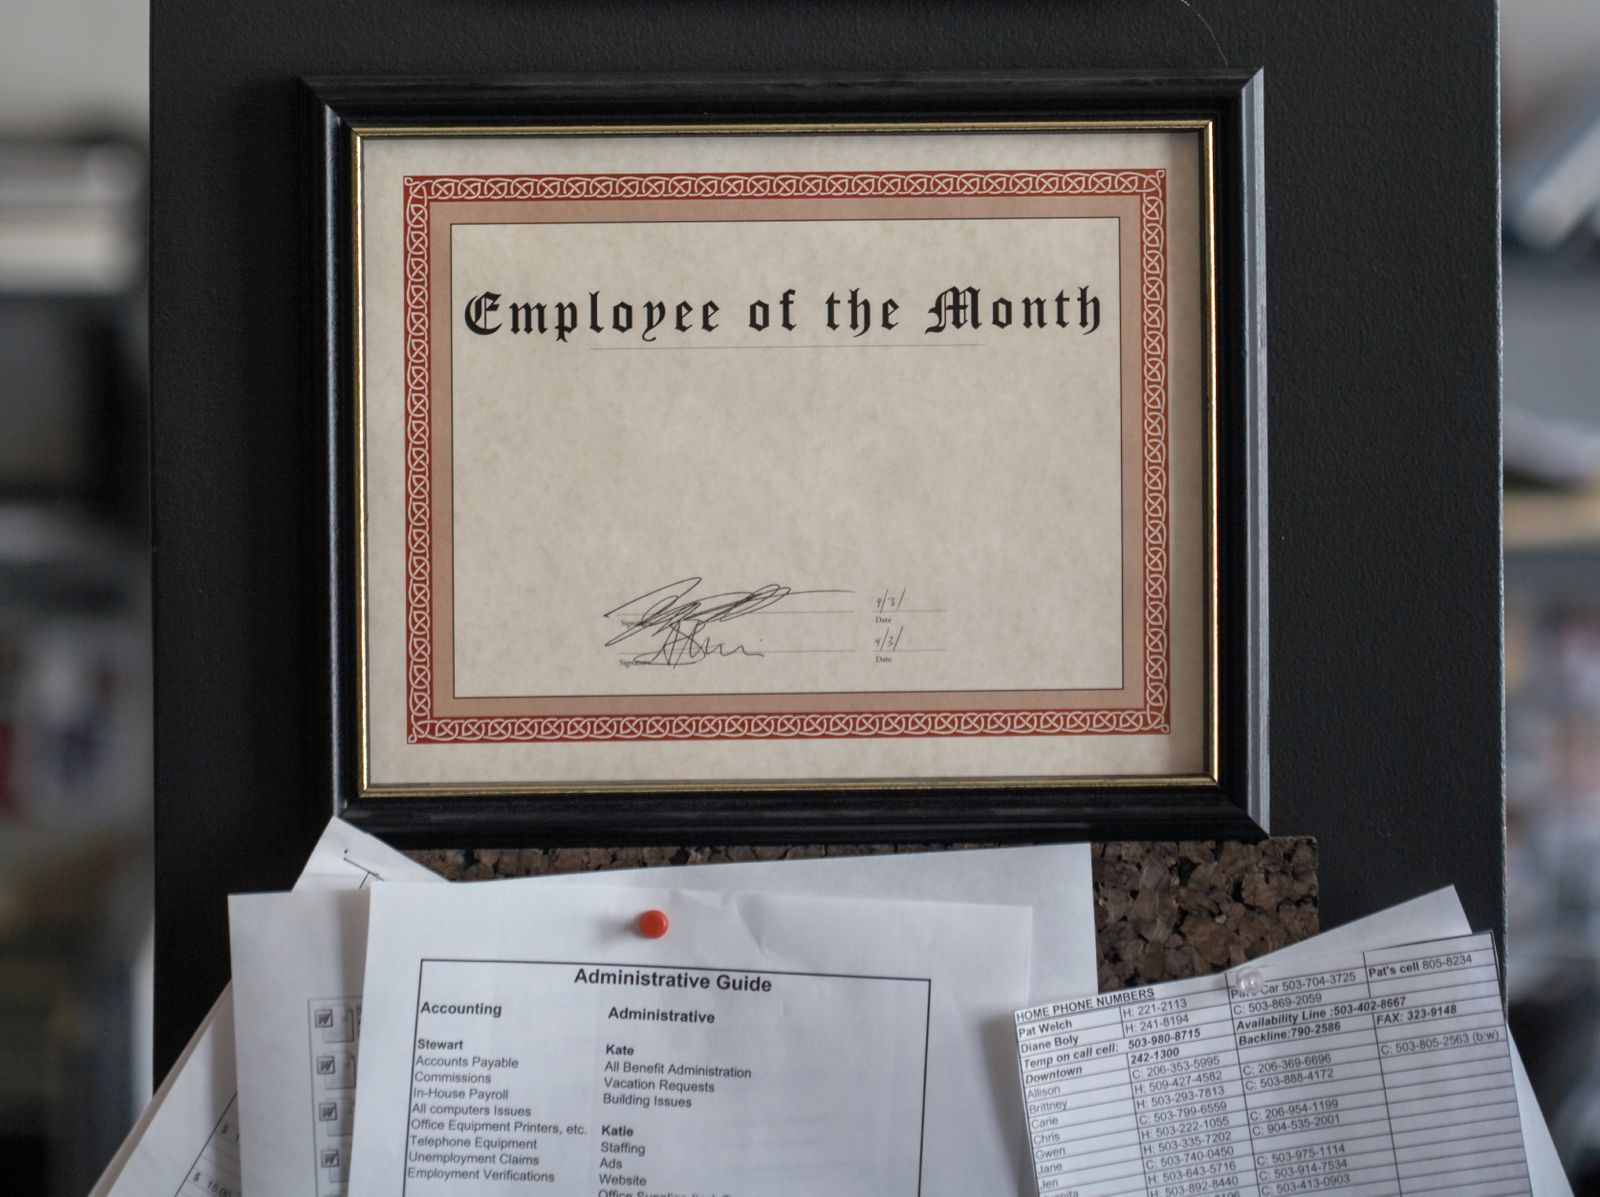 Blank employee of the month certificate